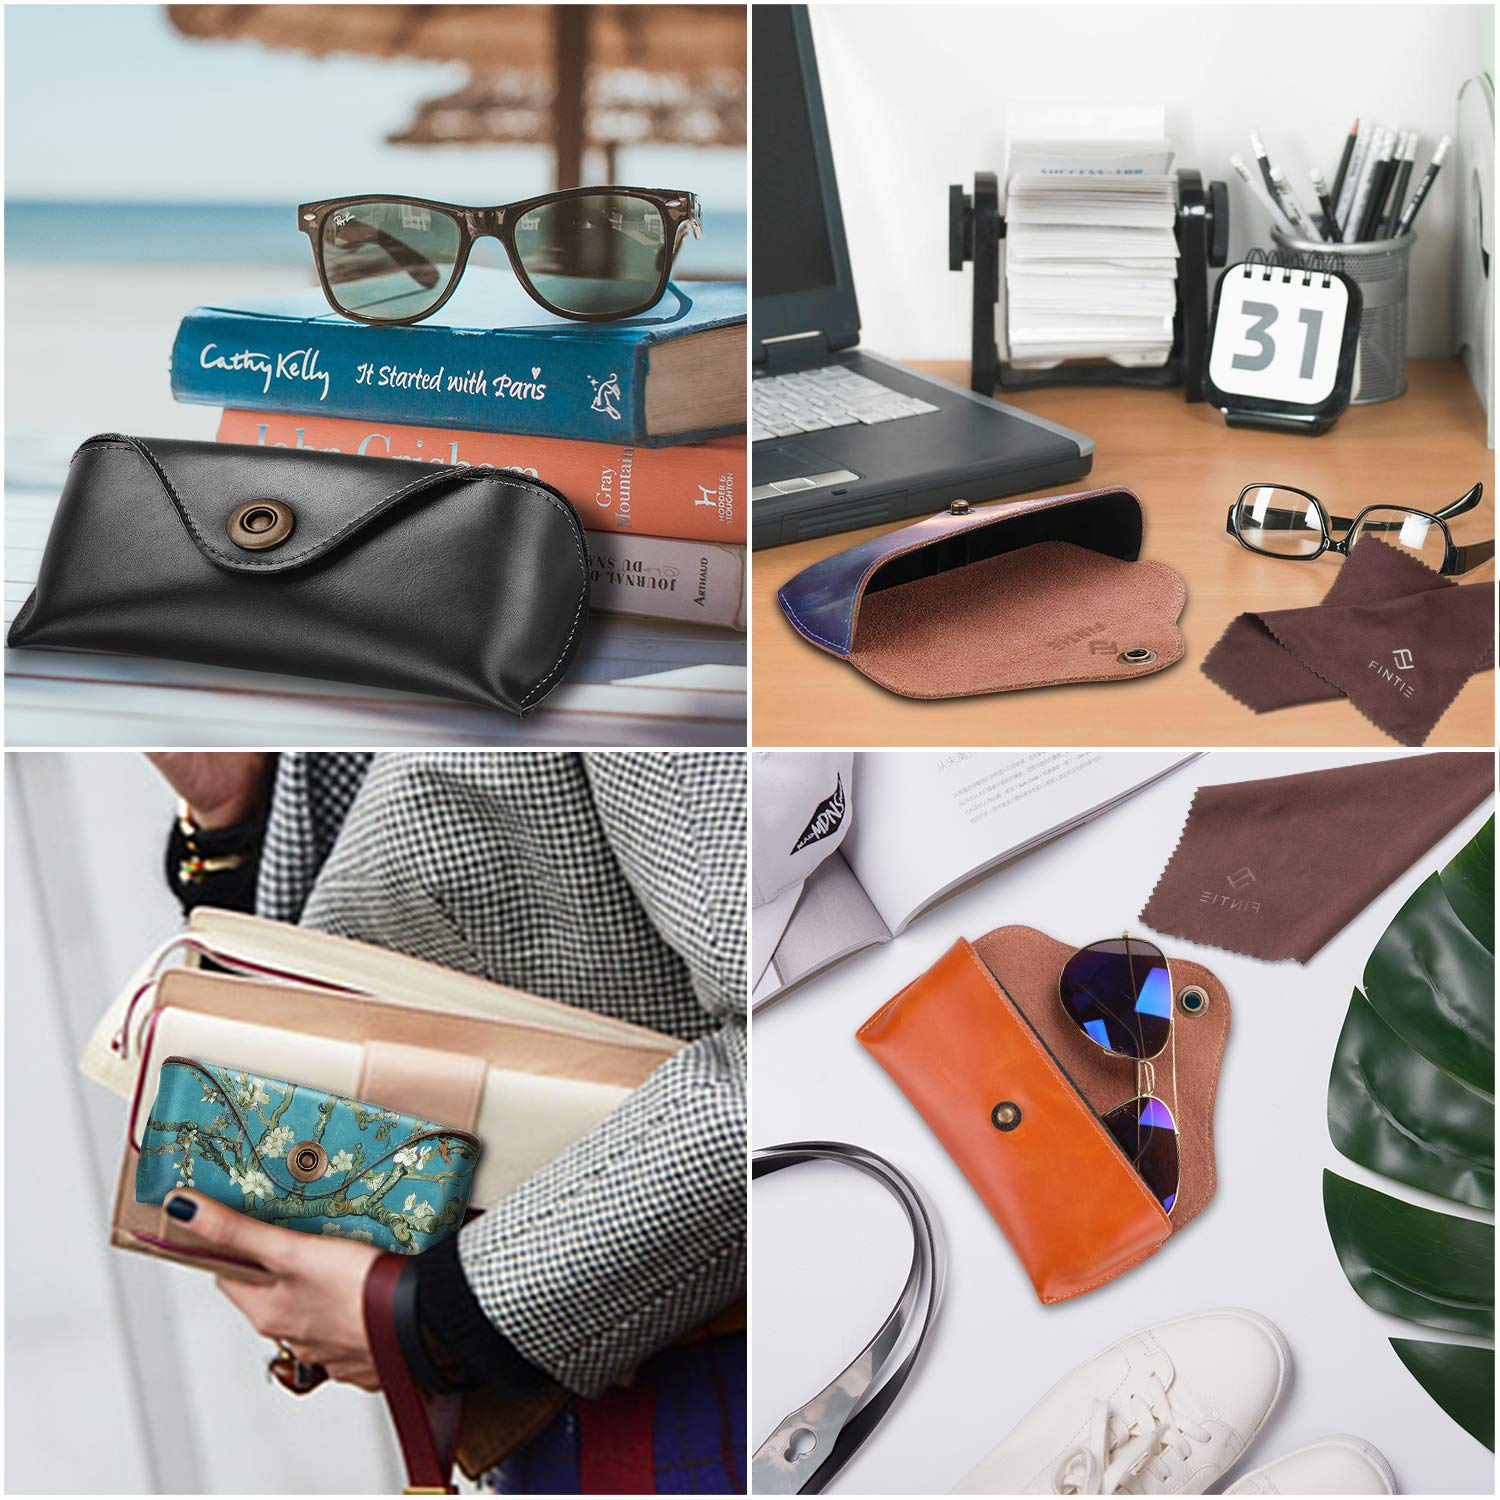 Fintie Portable Sunglasses Case, Semi-Hard Vegan Leather Glasses Carrying Case Eyewear Pouch with Snap Button Closure by Fintie (Image #8)